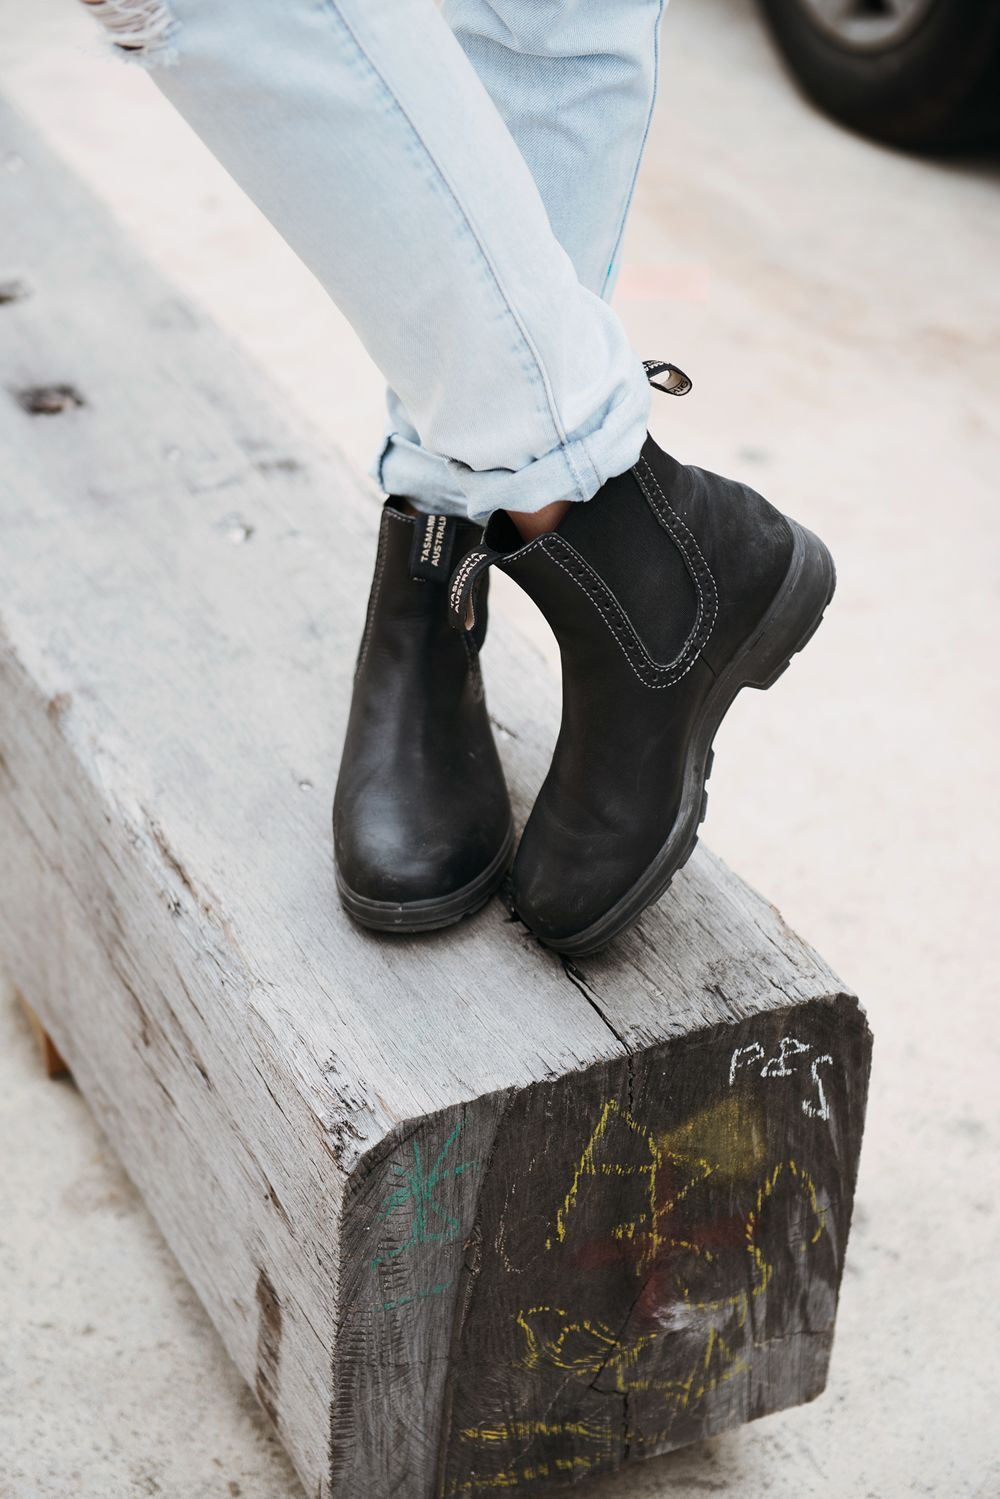 Blundstone Urbans 1448 Is A Women S Tall Elastic Sided Leather Boot In A Classic Voltan Black Colour Made Using Blundstone Boots Women Blundstone Boots Boots